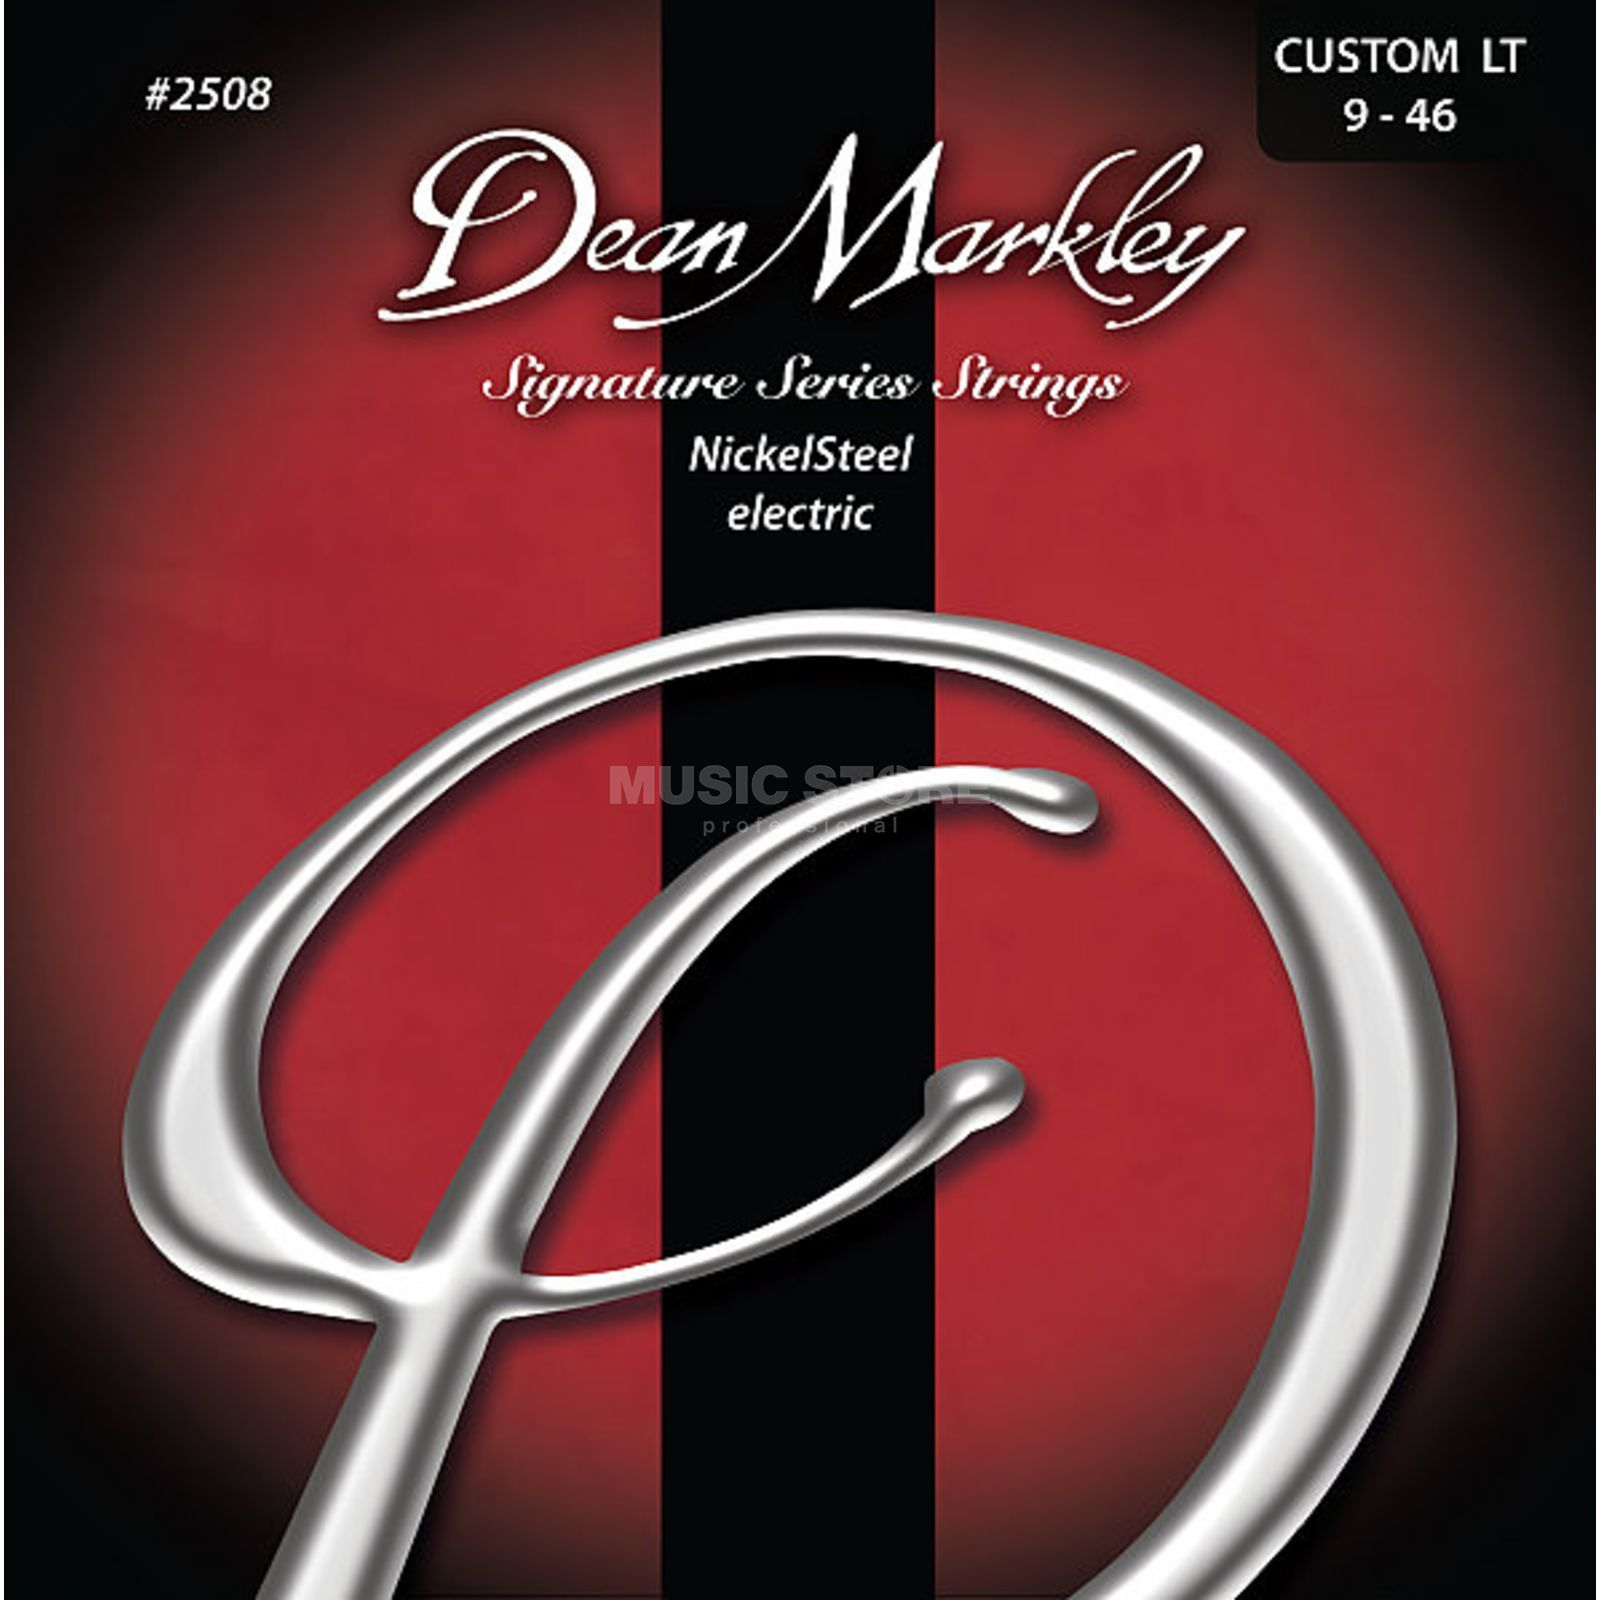 Dean Markley E-Guit. Strings 09-46 2508B CL Nickel Steel Zdjęcie produktu